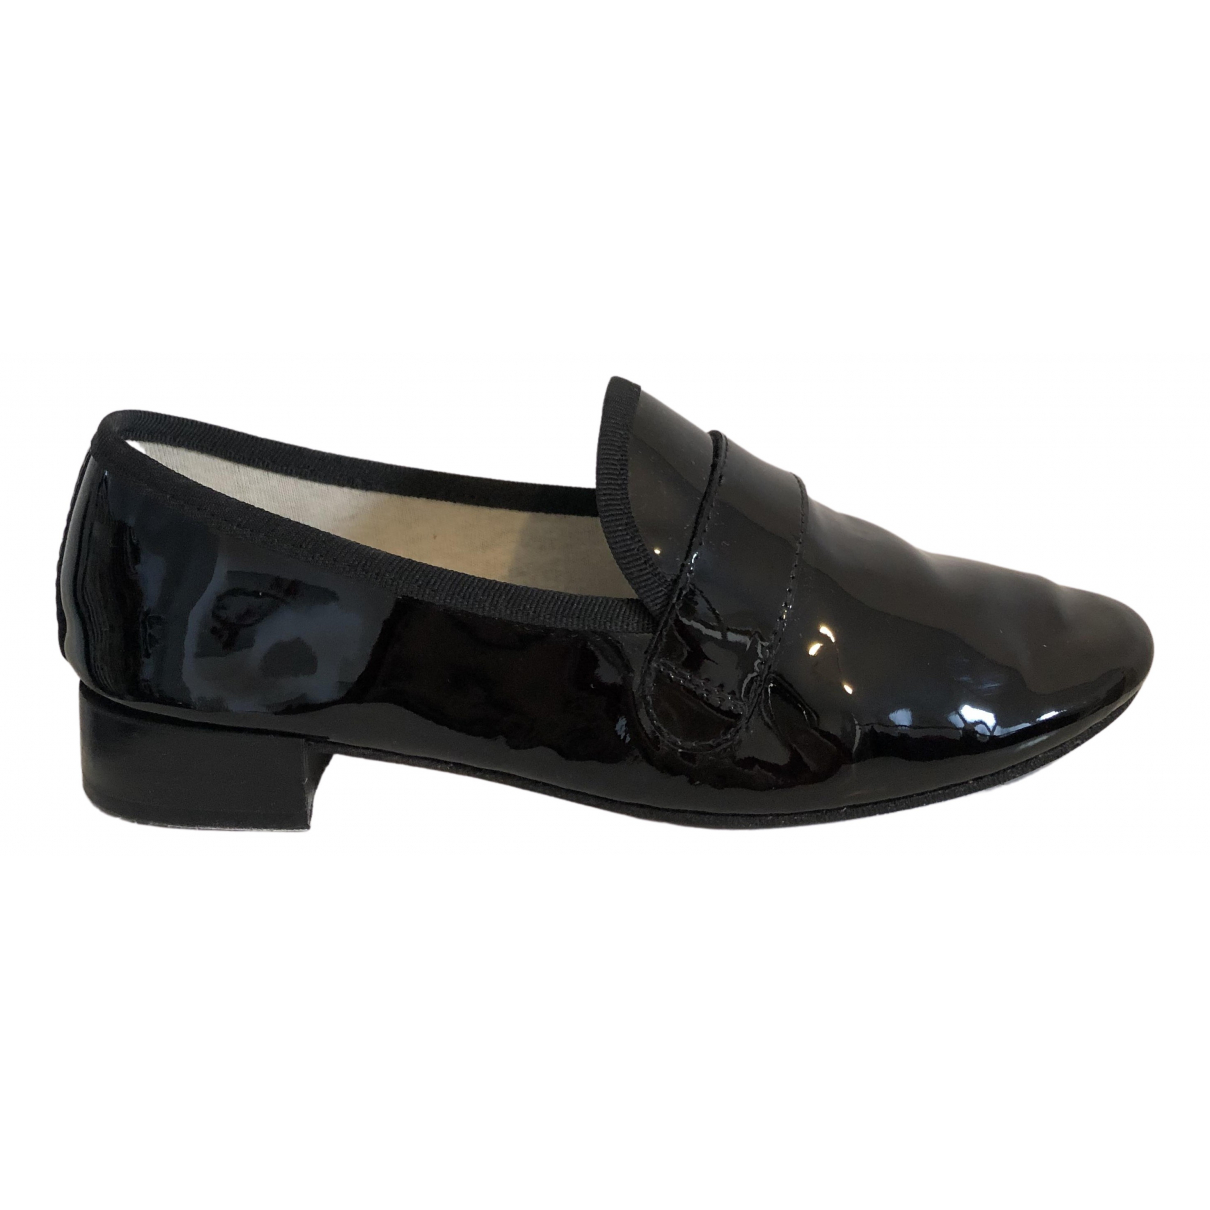 Repetto N Black Patent leather Flats for Women 37 EU